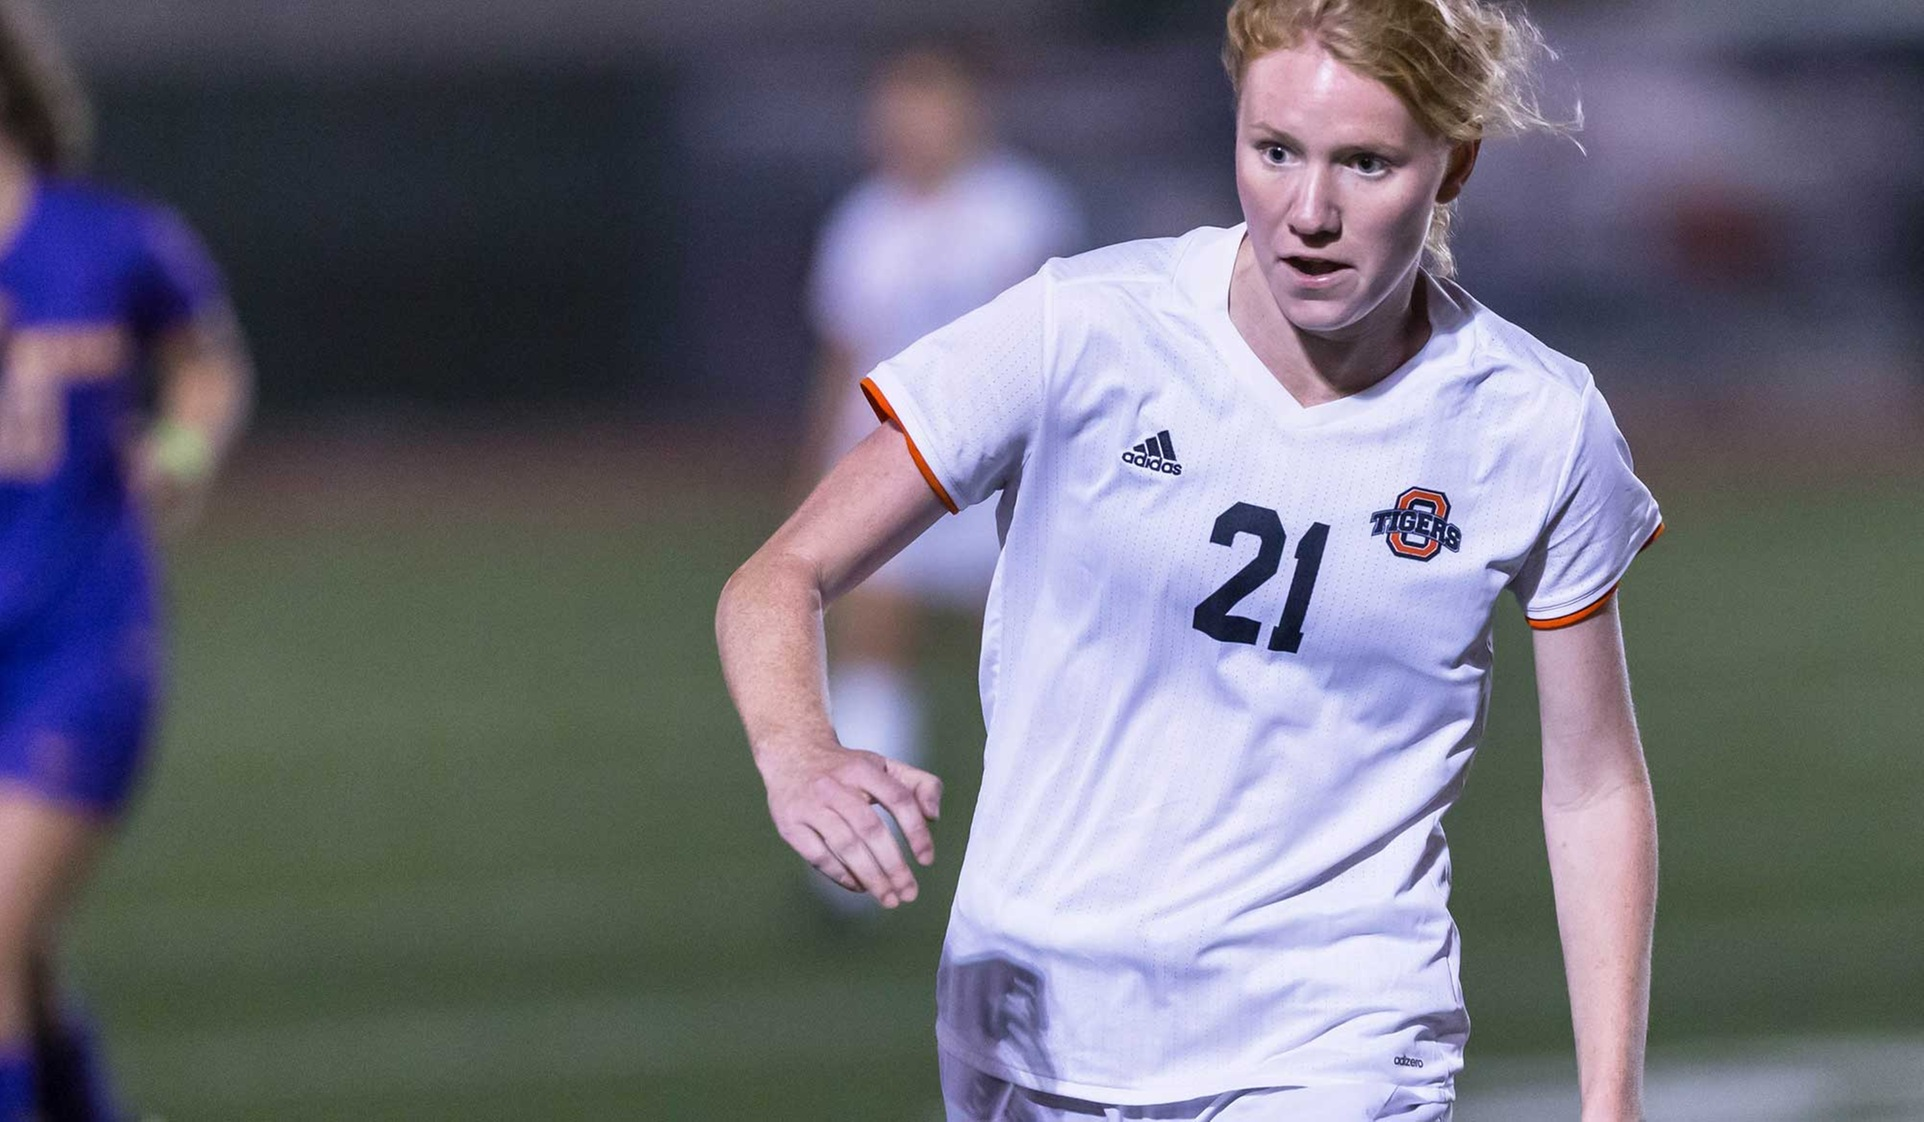 Oxy Ties at CLU, Tied For First